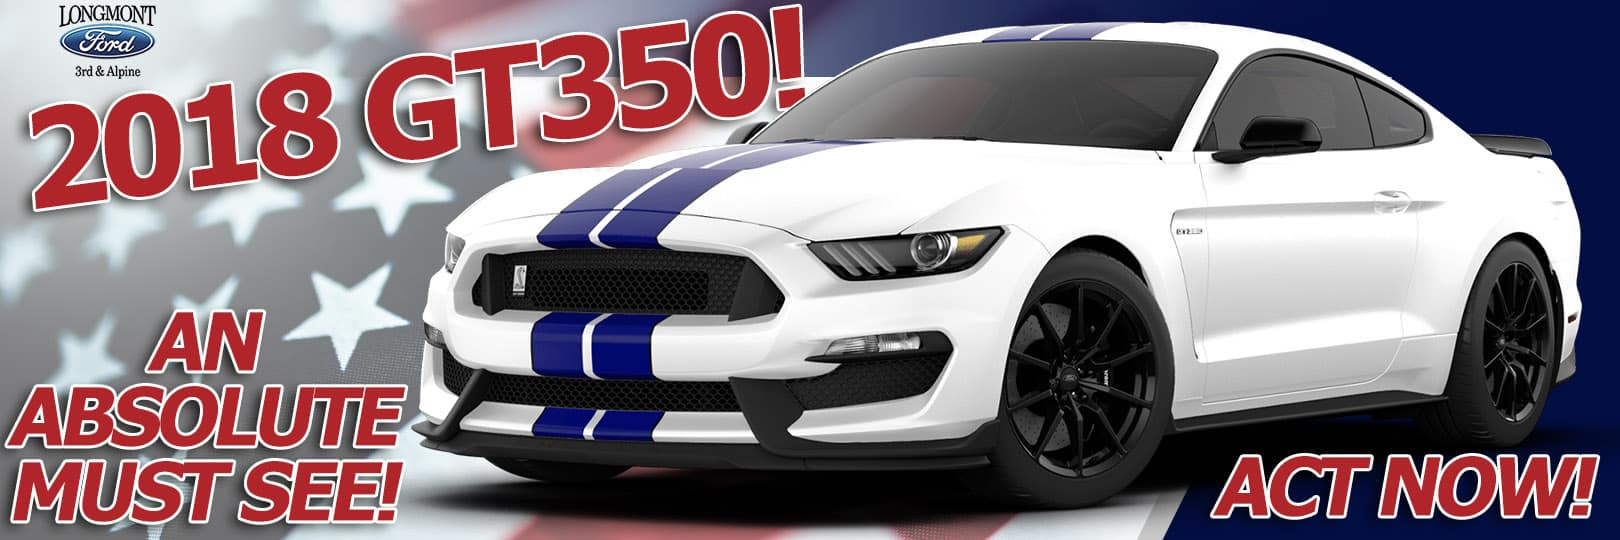 2018 Shelby GT350